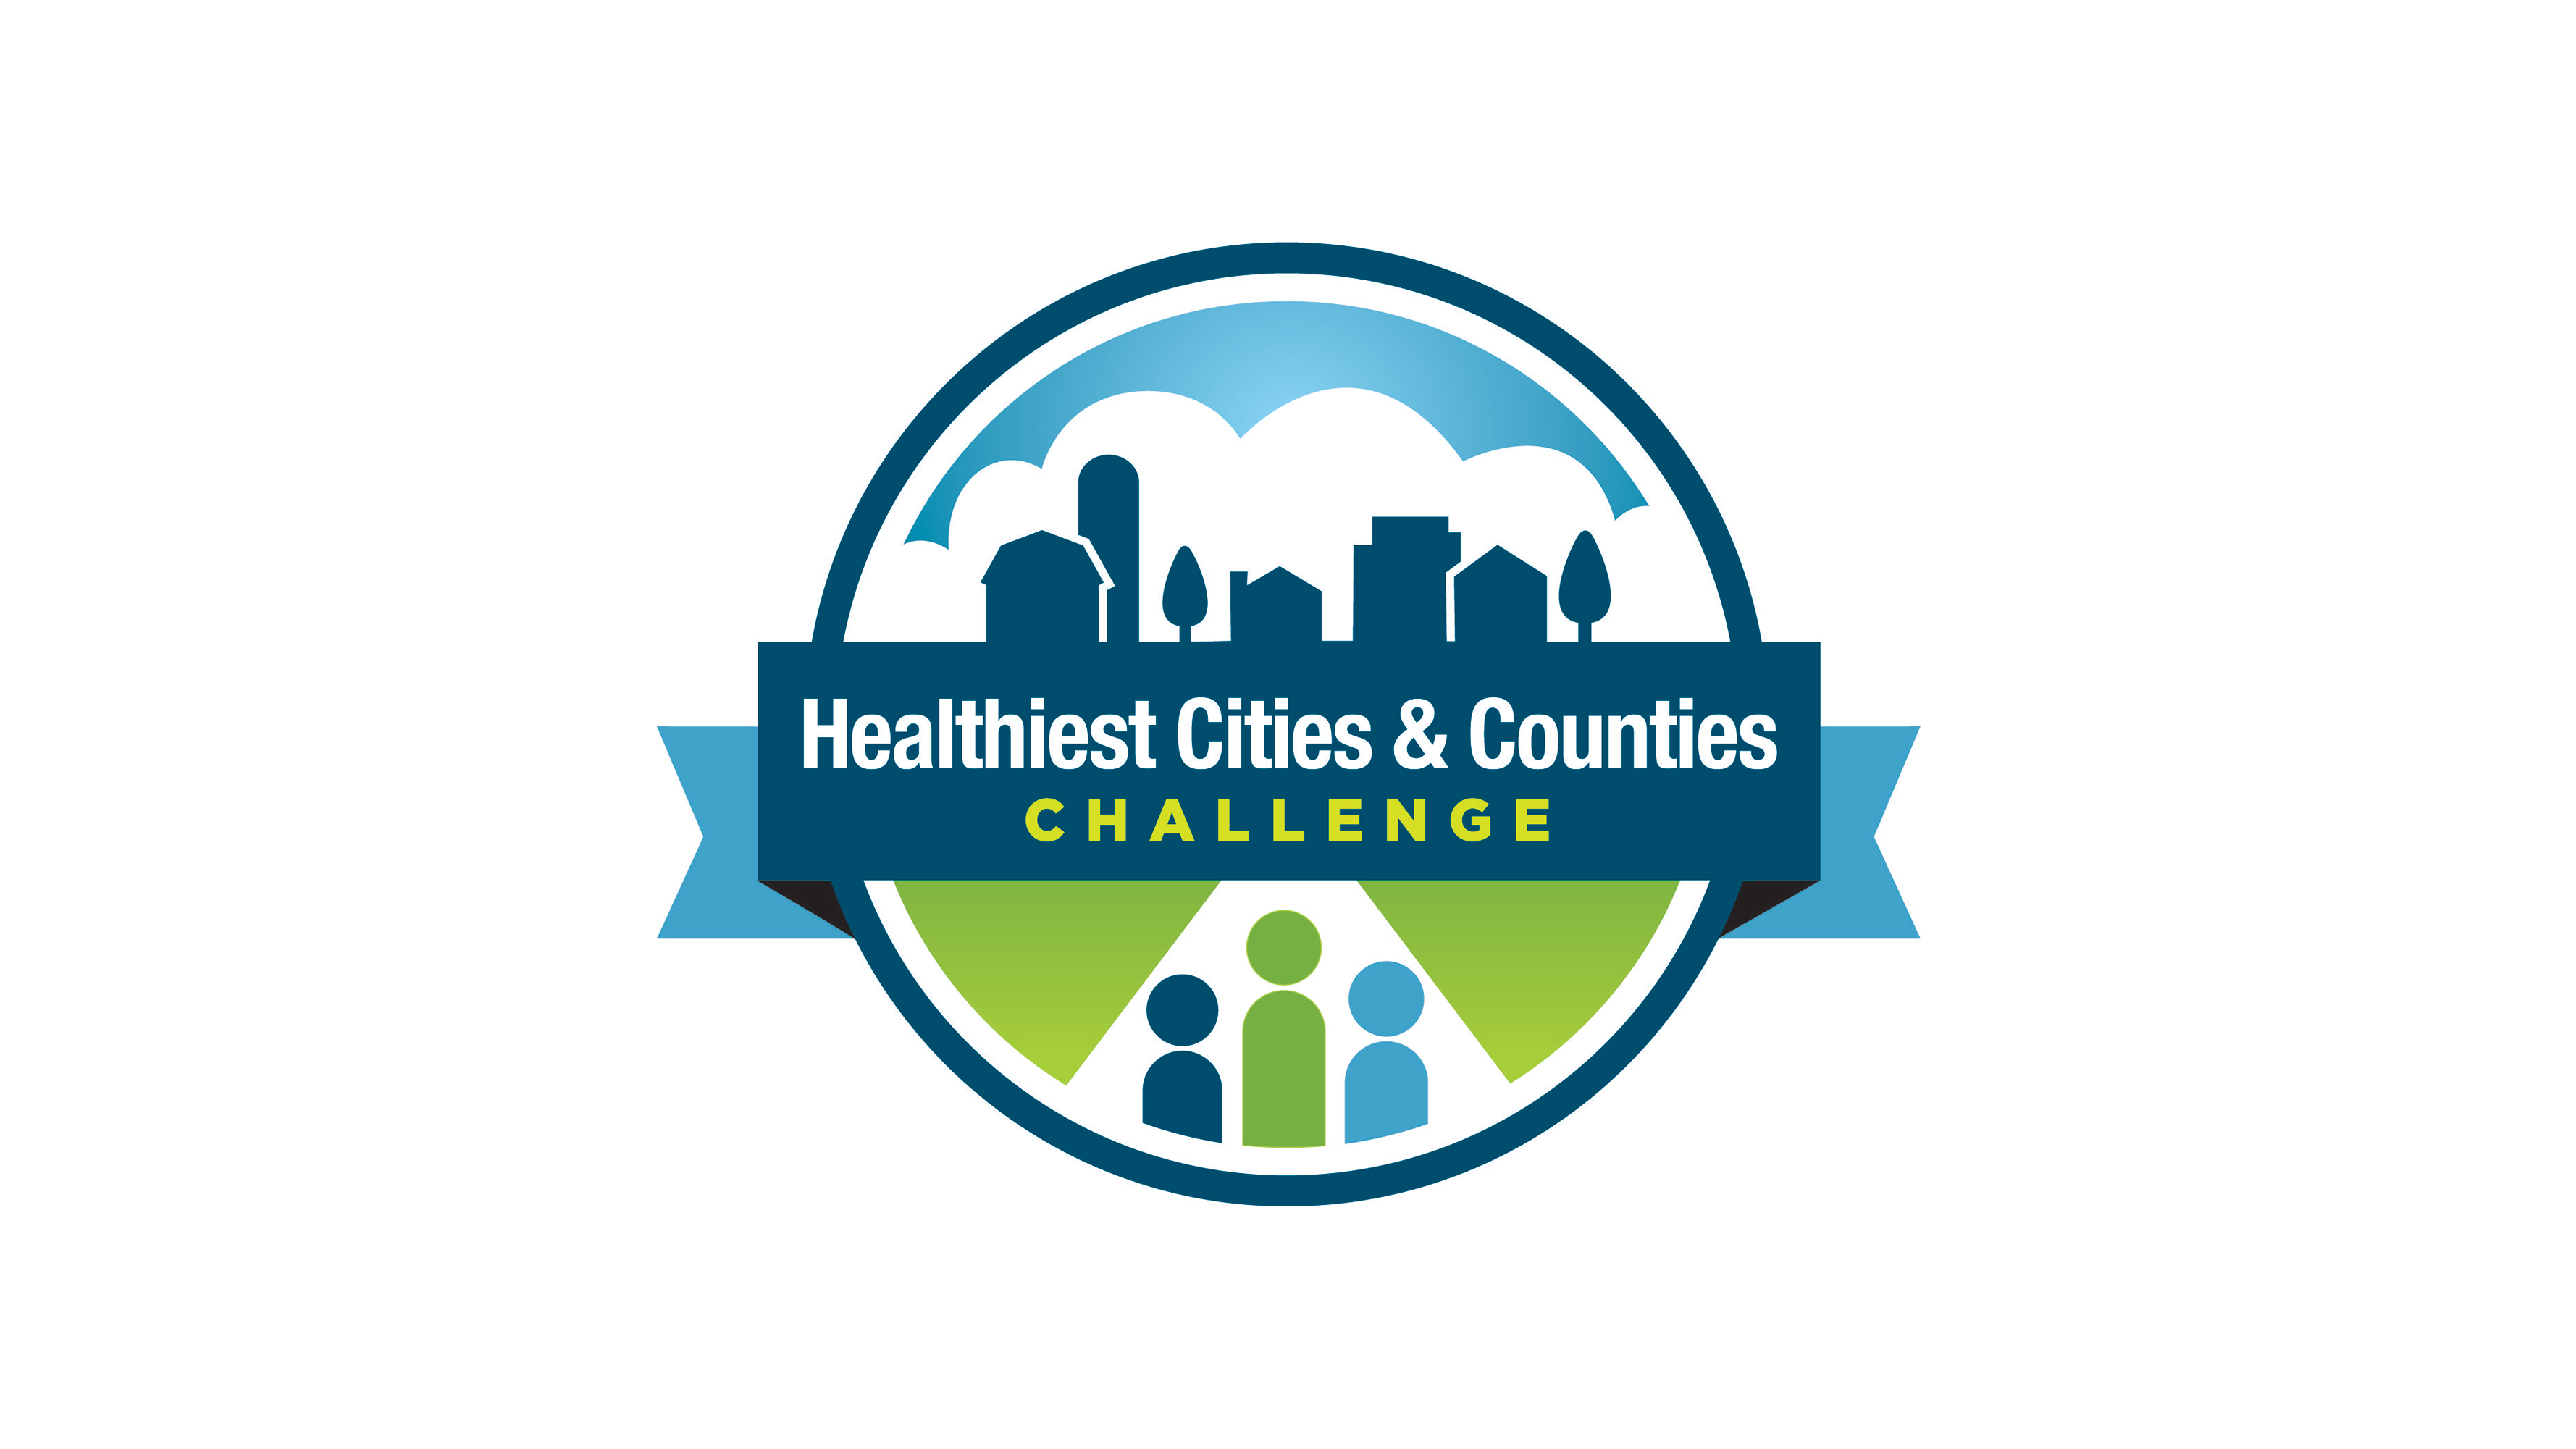 Logo of the Healthiest Cities & Counties Challenge